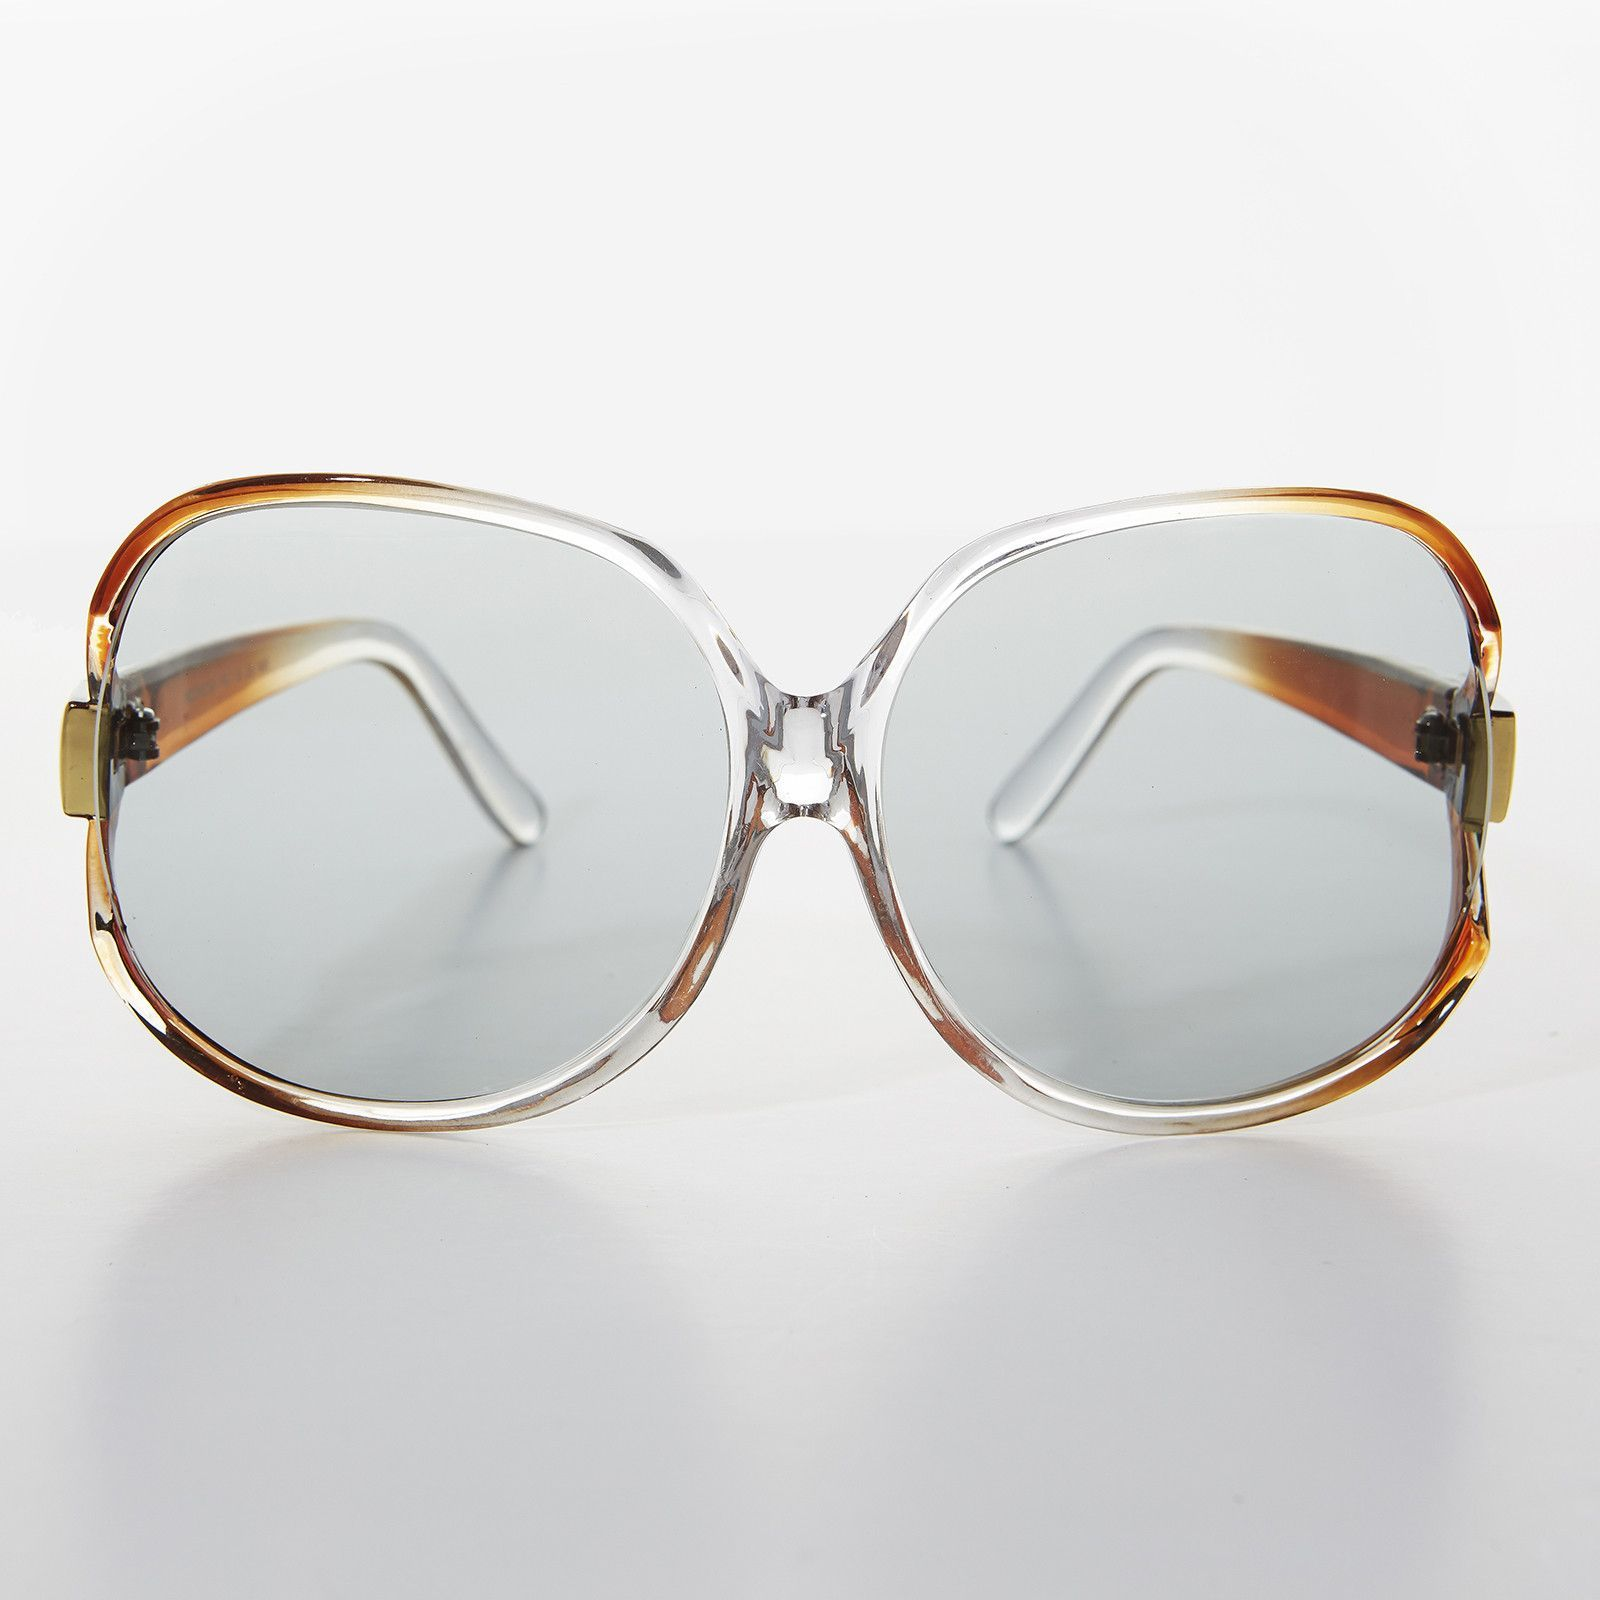 f009ff1bbf You will stand out and be noticed wearing these bold and beautiful  sunglasses. Vintage 1980s Sun sensor glass lens with convenient transition  ...